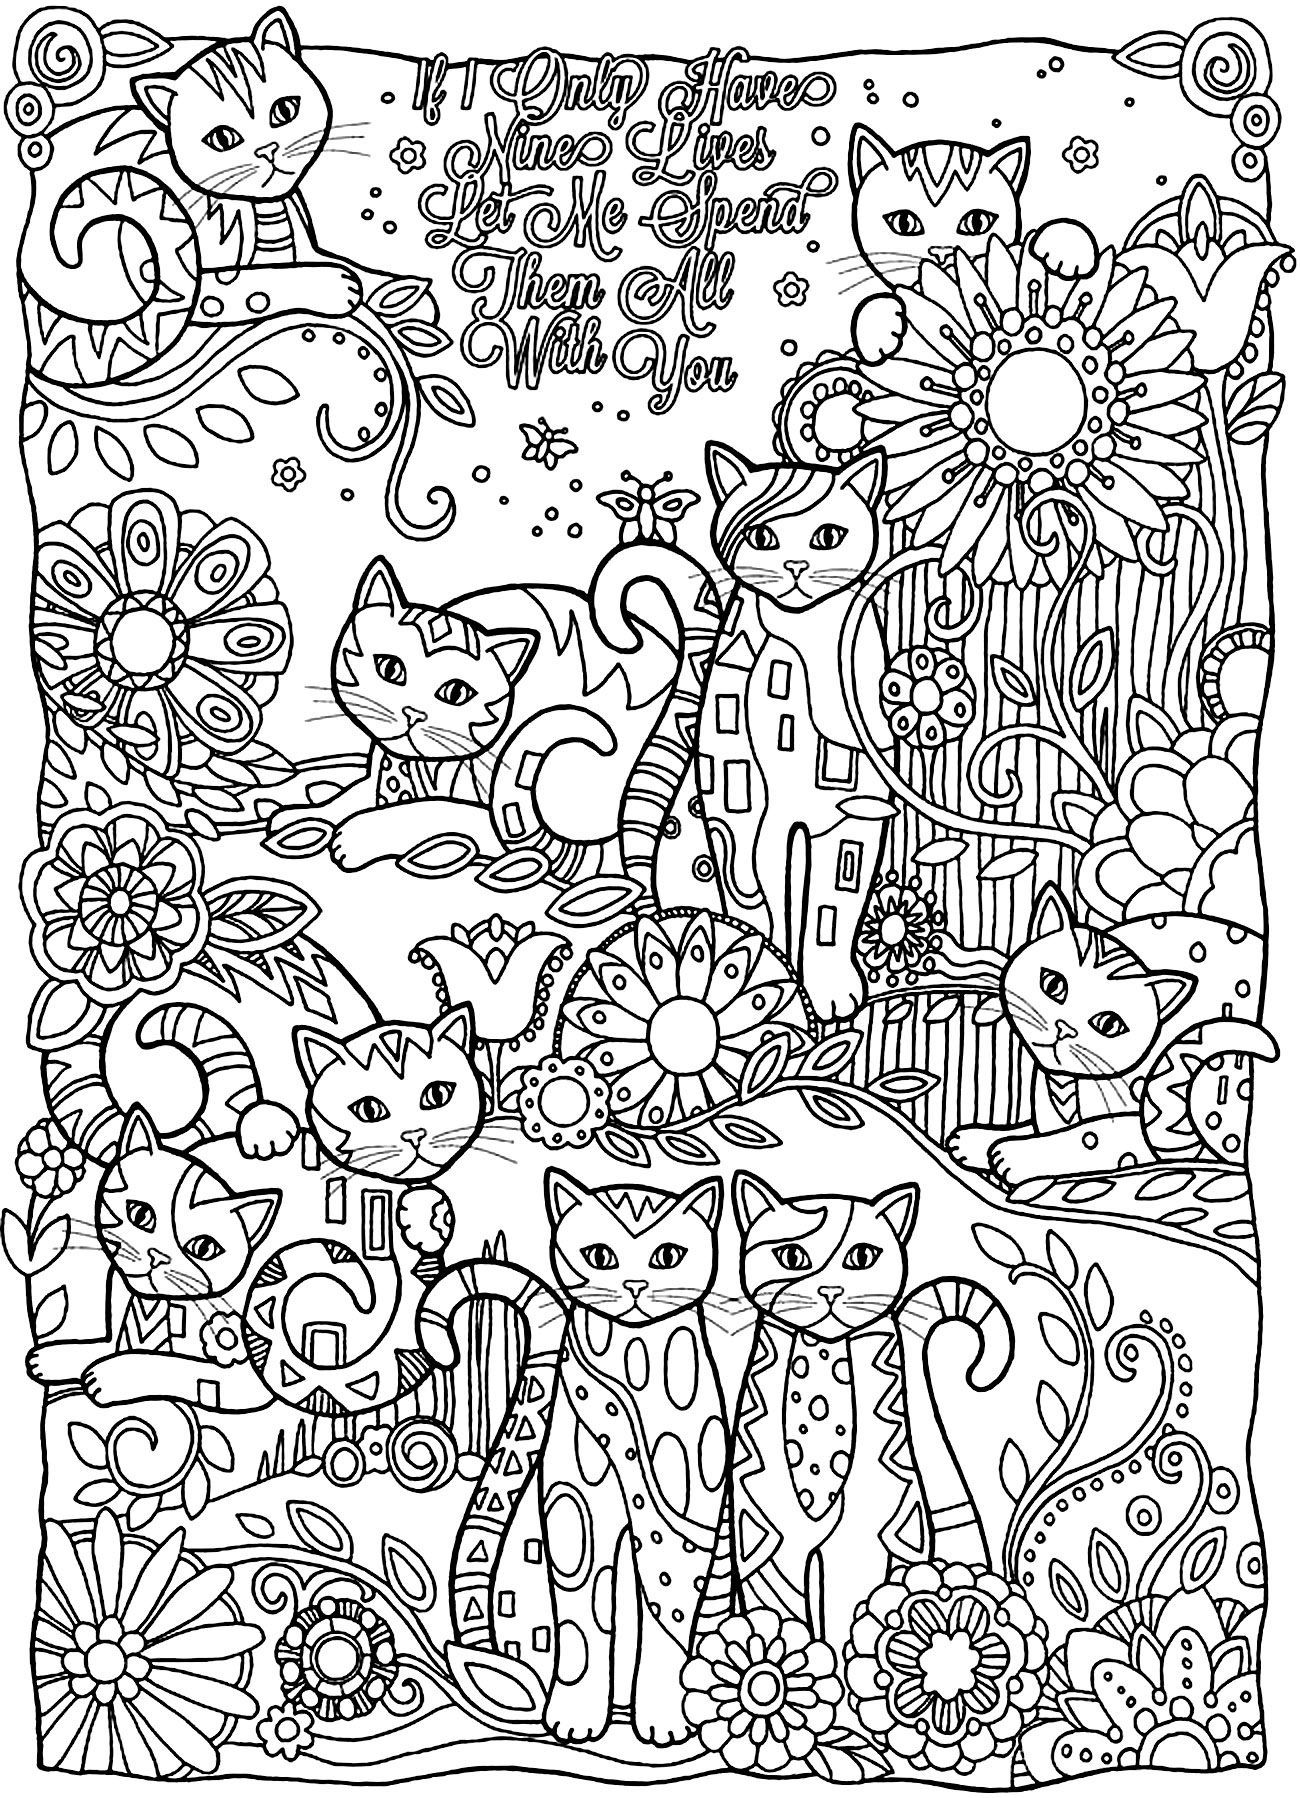 Cat Coloring Pages For Adults Best Coloring Pages For Kids Coloring Pages Inspirational Unicorn Coloring Pages Bear Coloring Pages